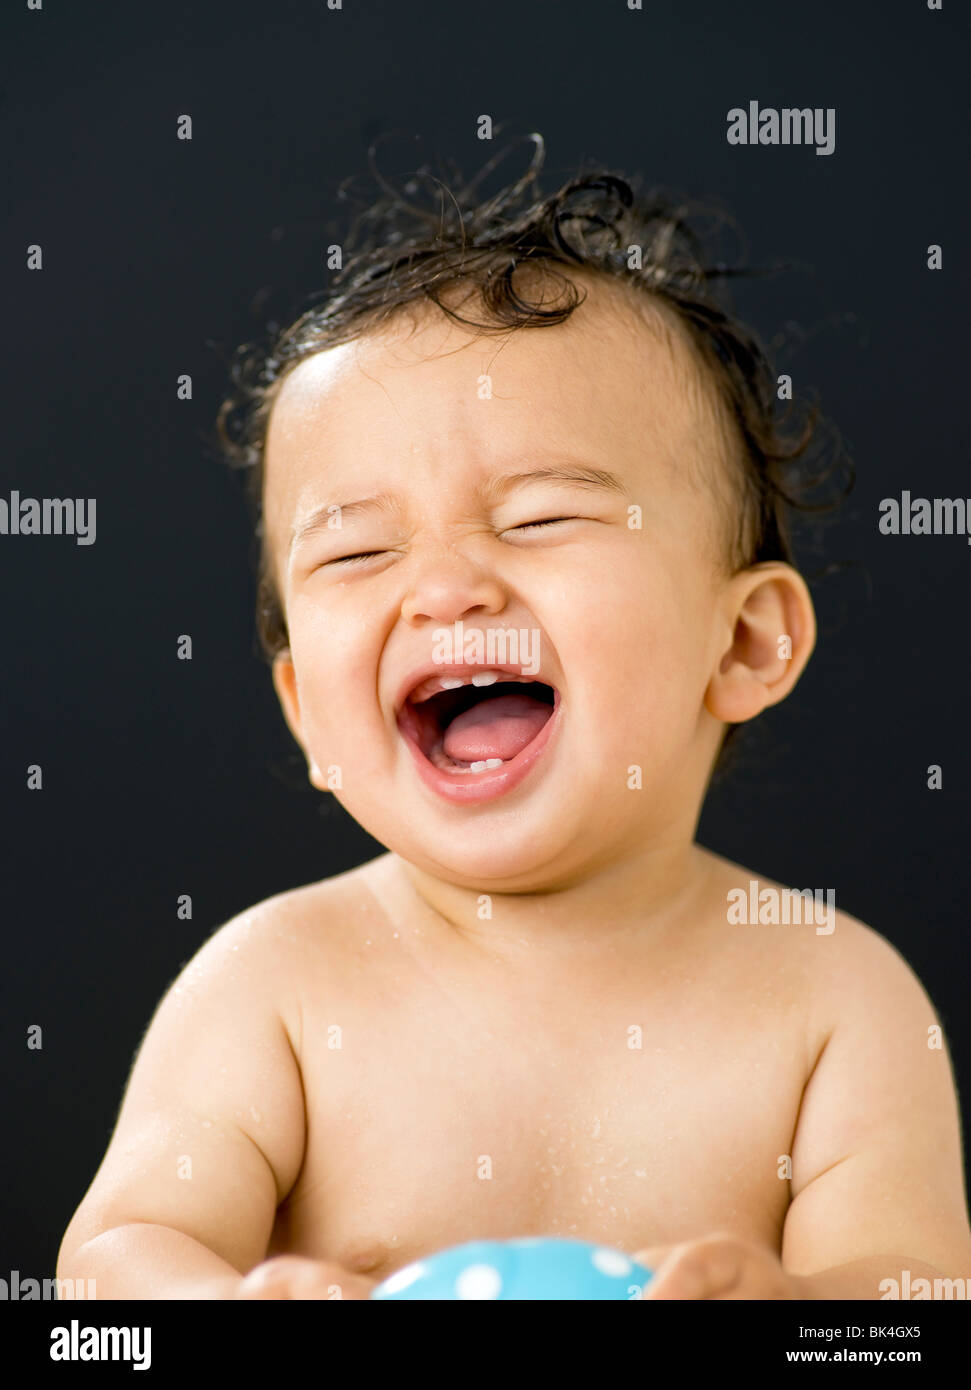 Happy baby in front of black background - Stock Image